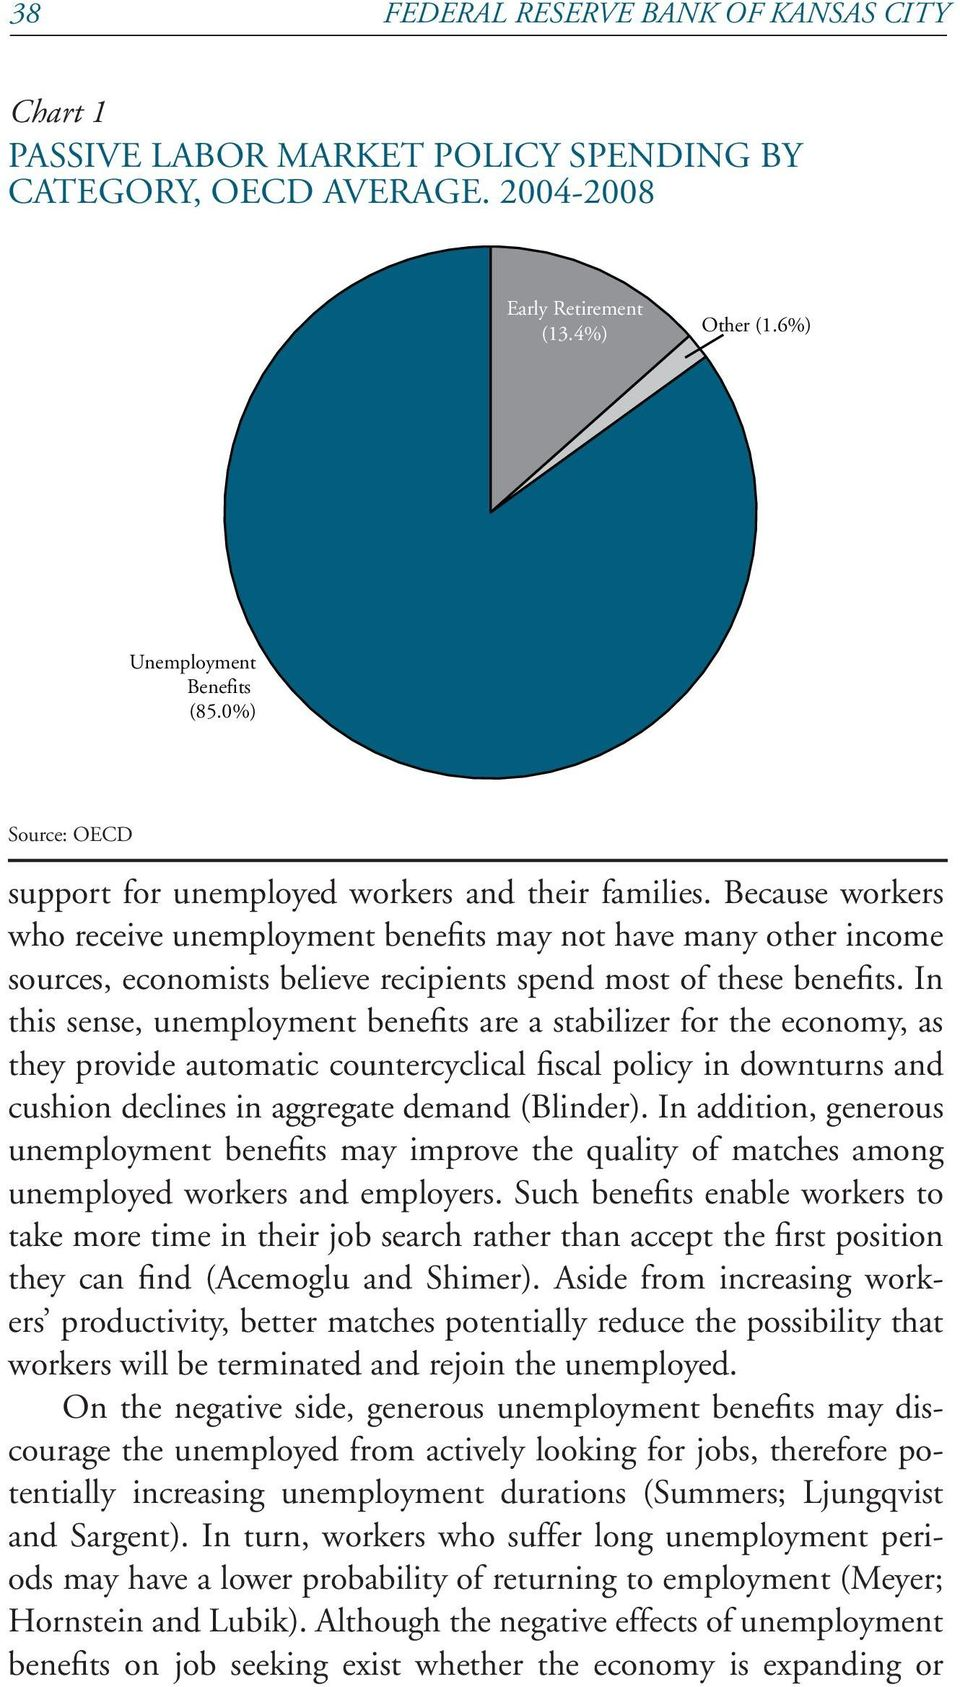 Because workers who receive unemployment benefits may not have many other income sources, economists believe recipients spend most of these benefits.